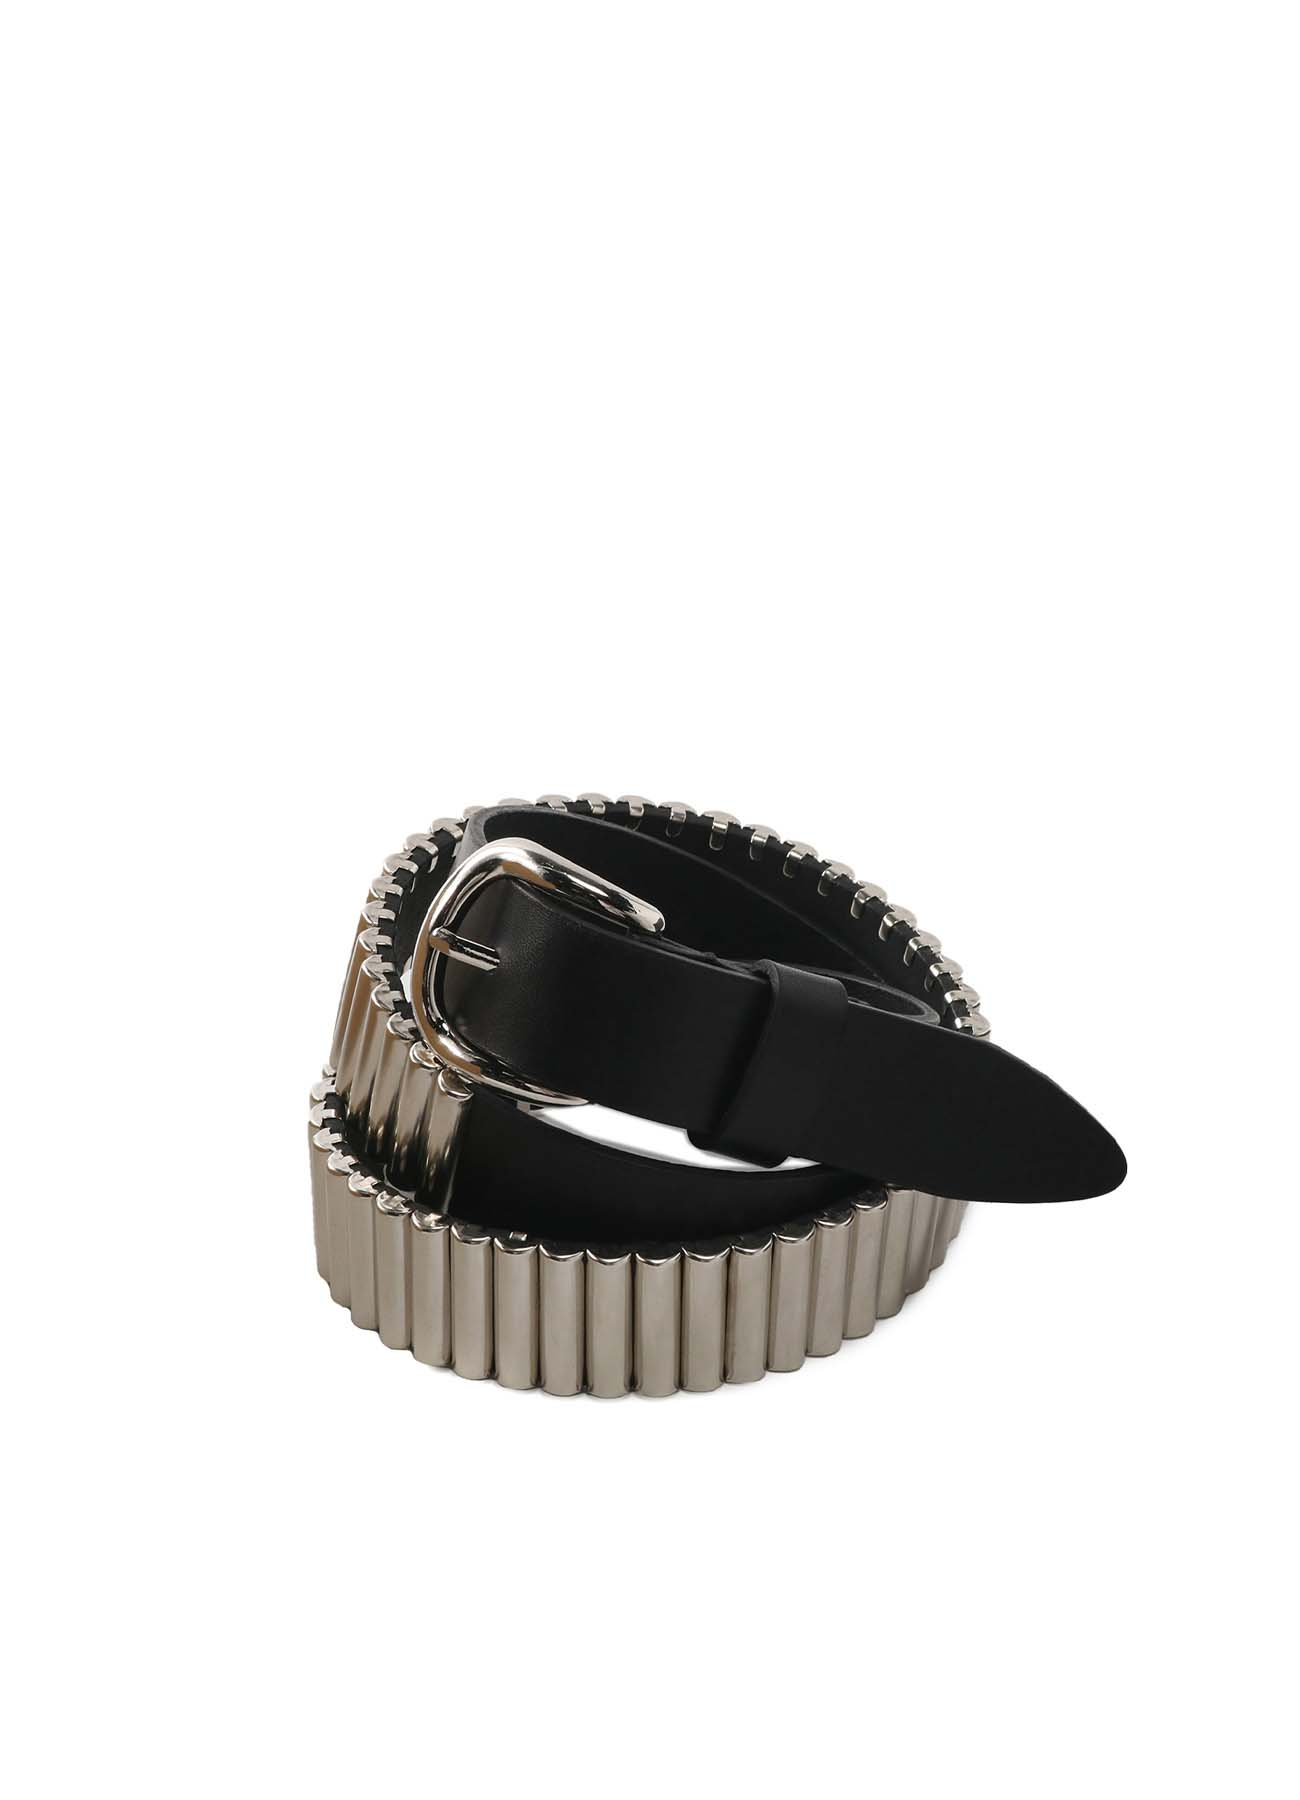 Oil Nume Leather Rivet Belt